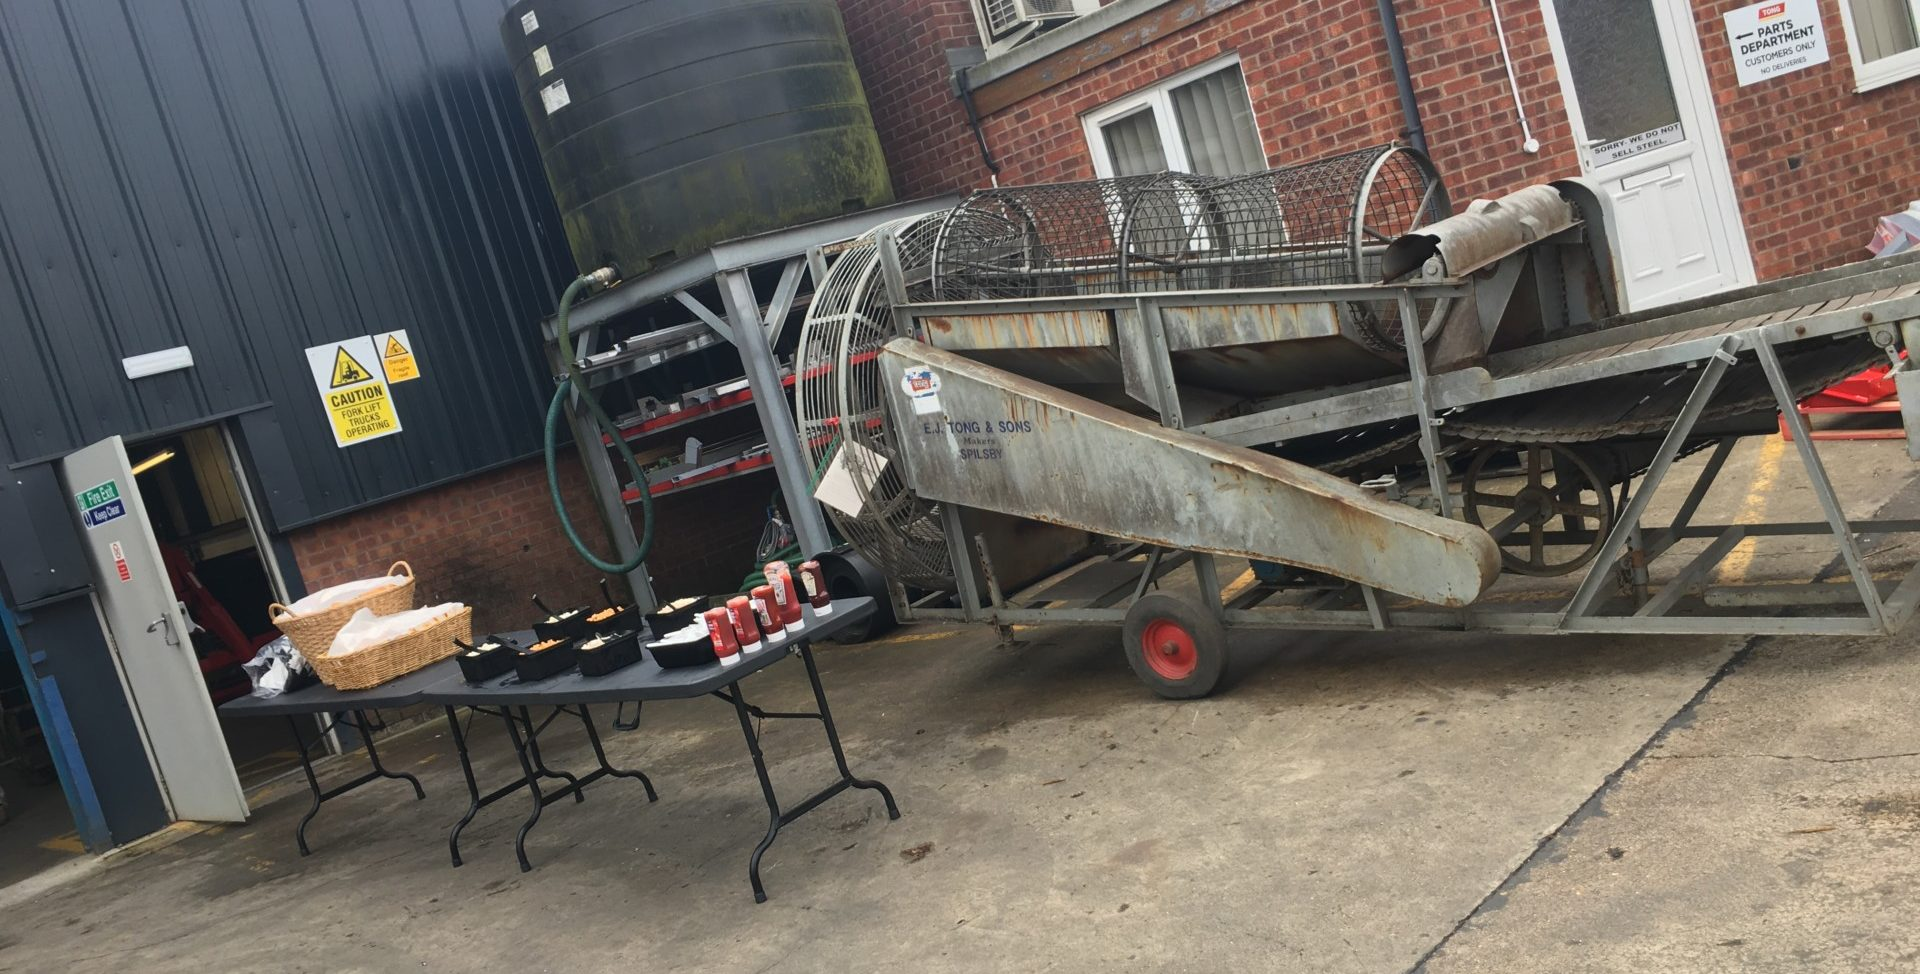 Tong Engineering Vintage Potato Sorter in company celebration